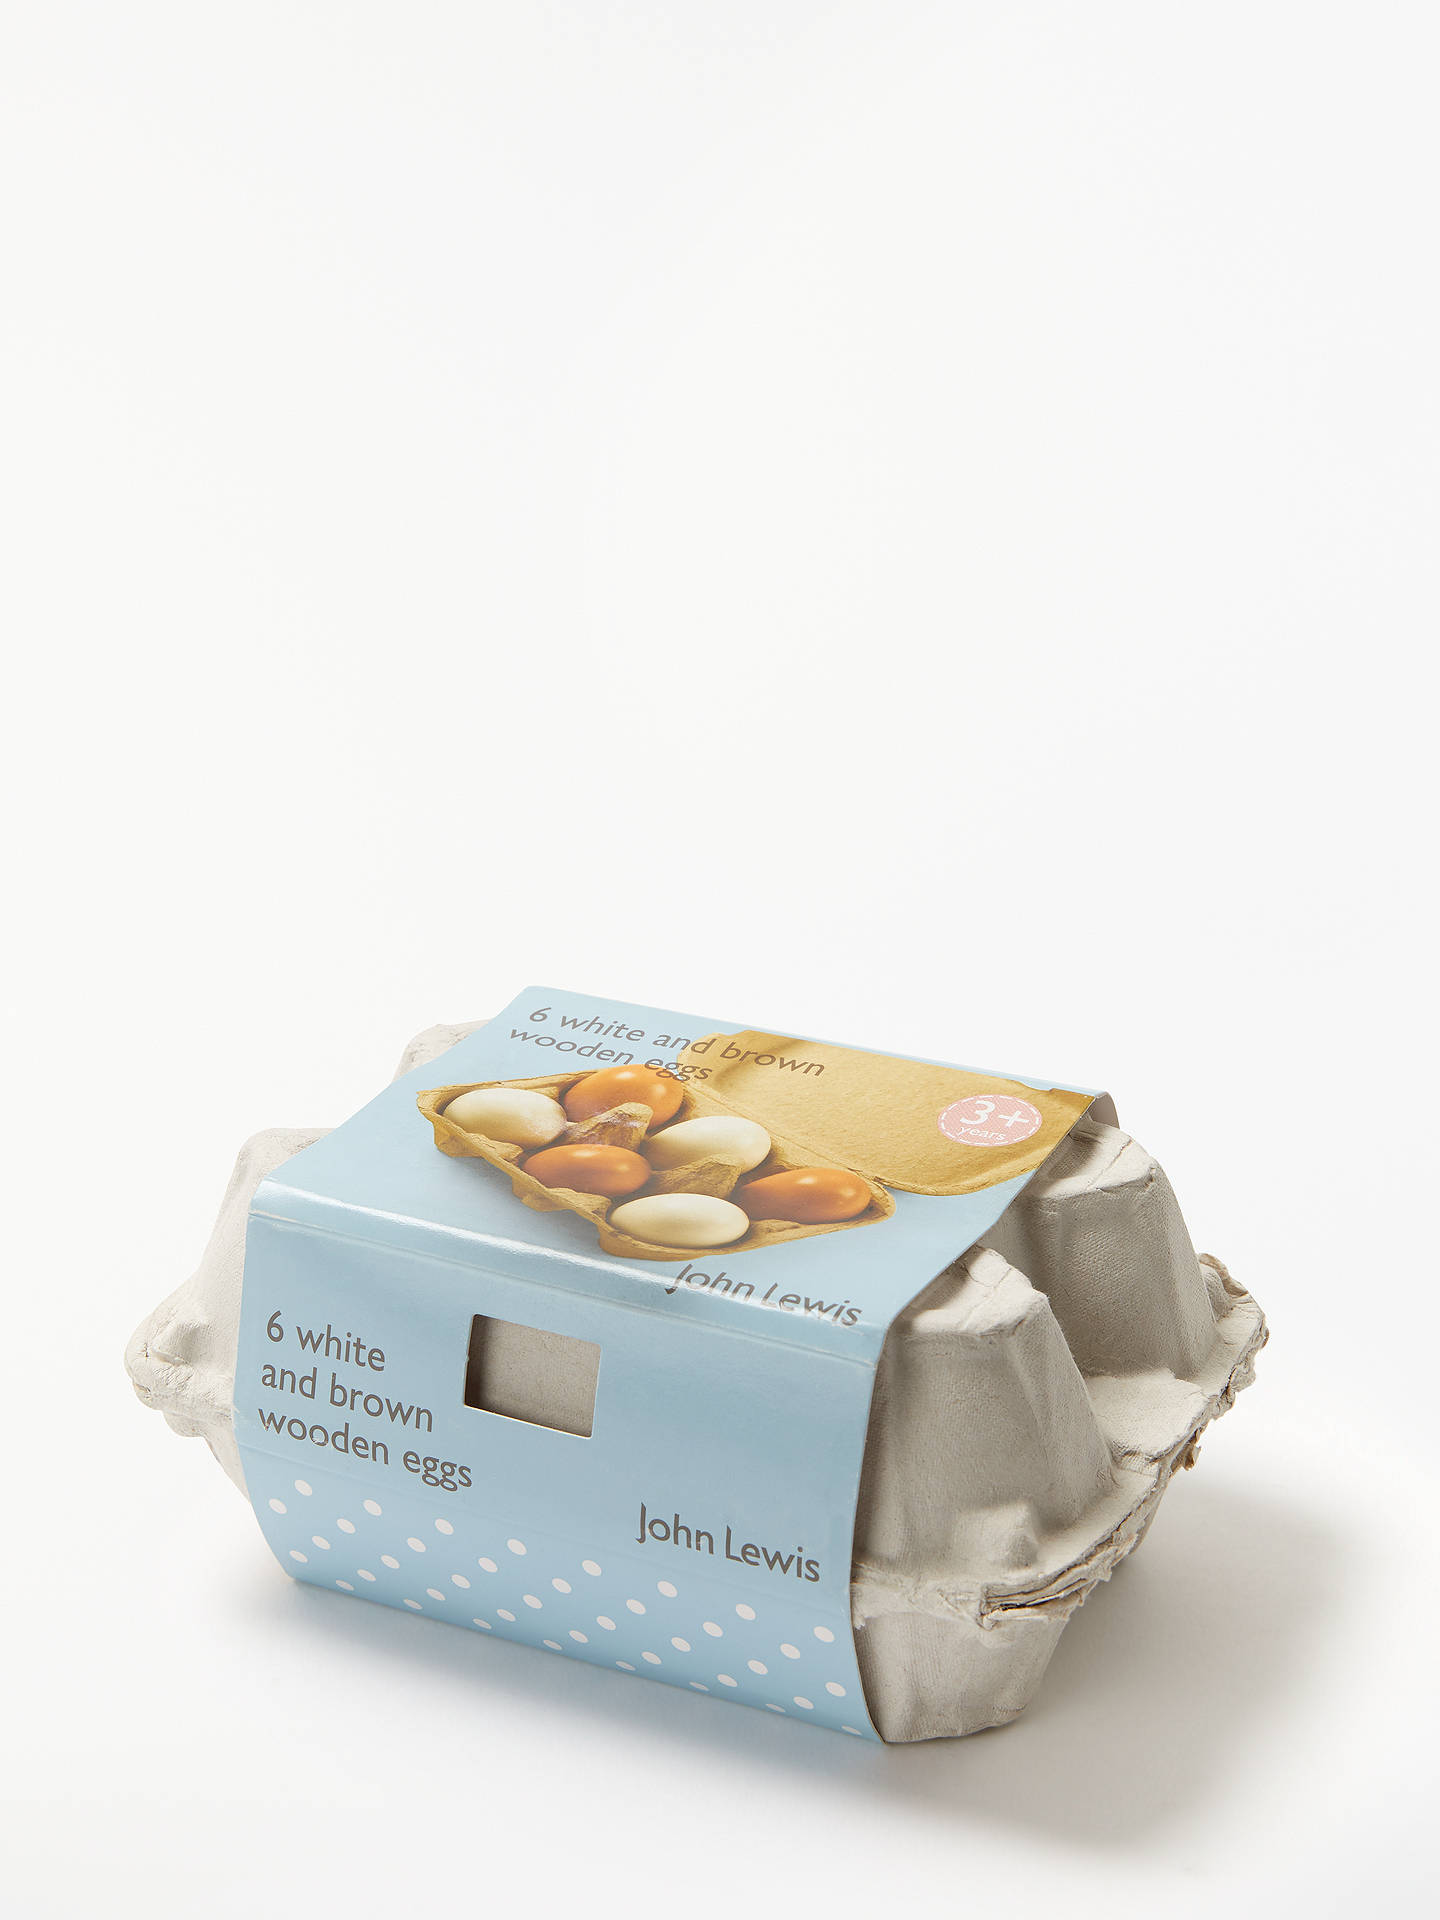 BuyJohn Lewis & Partners Eggs in a Box Online at johnlewis.com